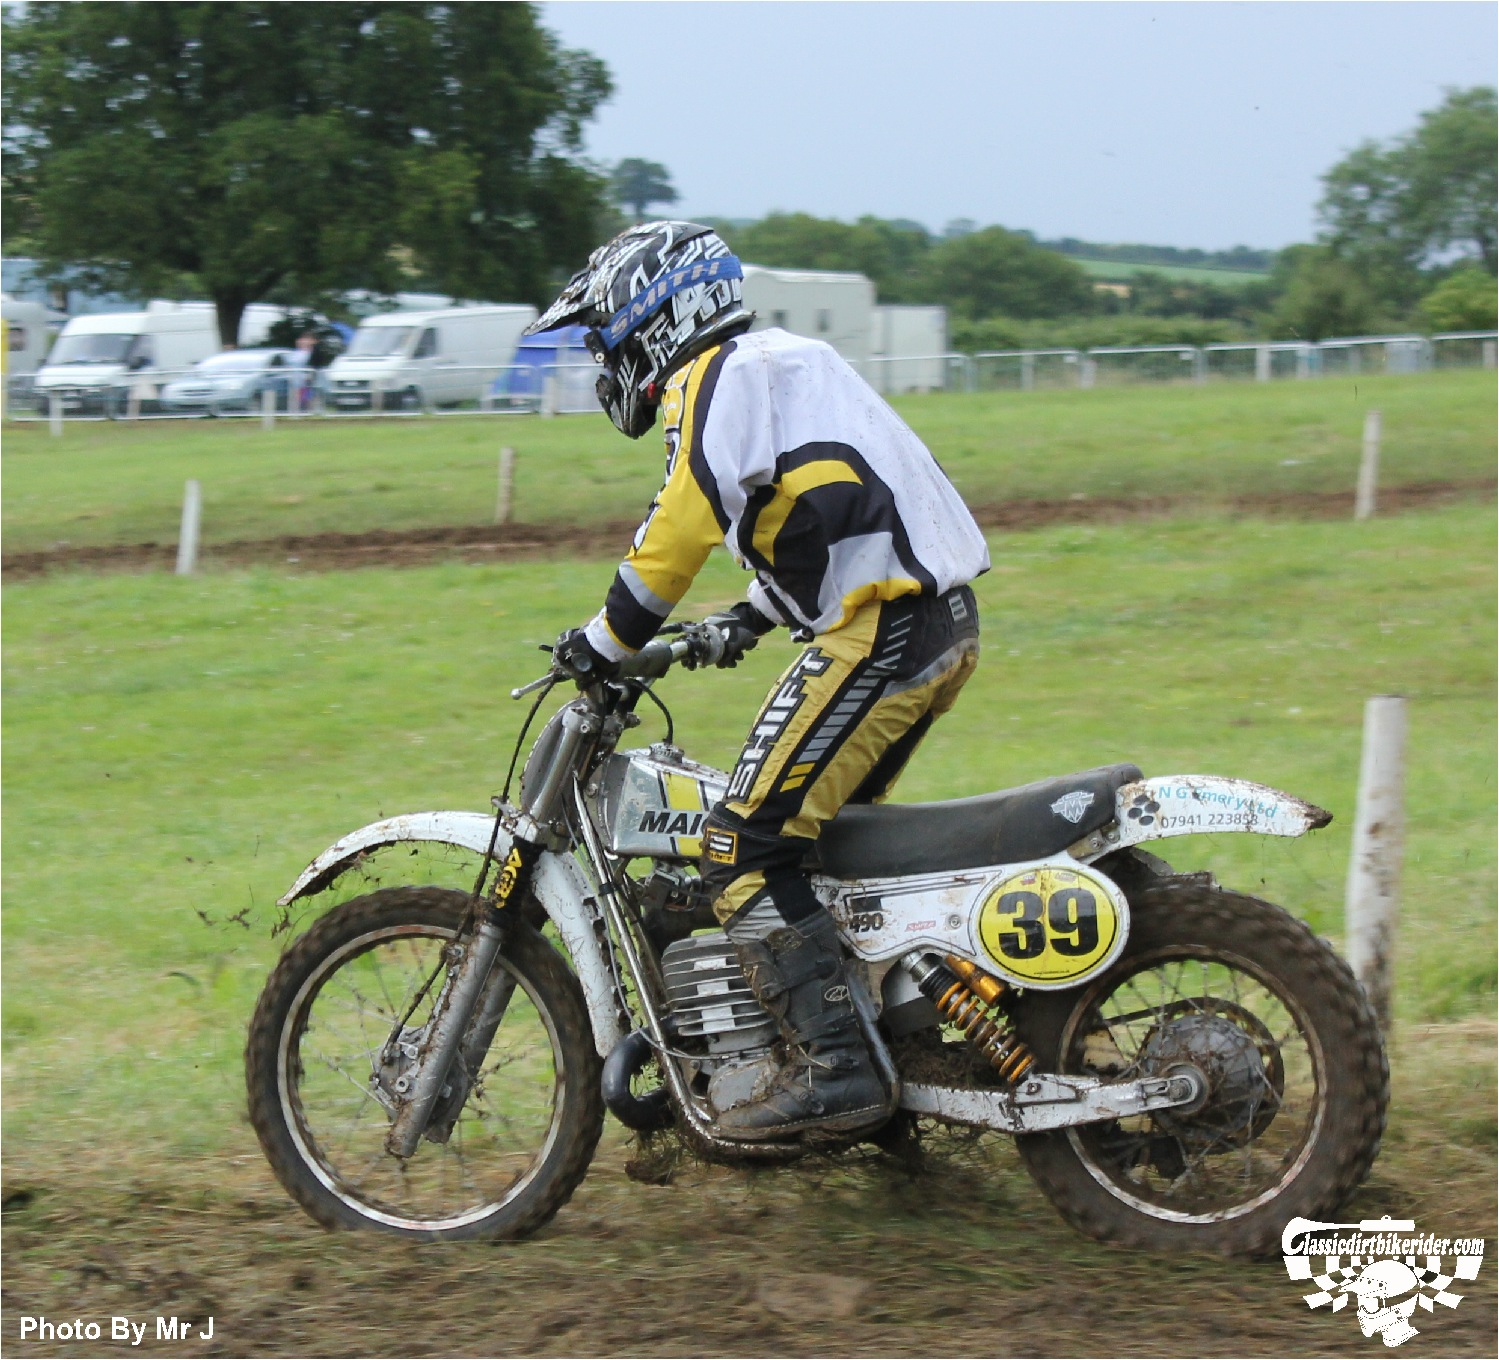 king of the castle 2015 photos Farleigh Castle twinshock motocross classicdirtbikerider.com 78